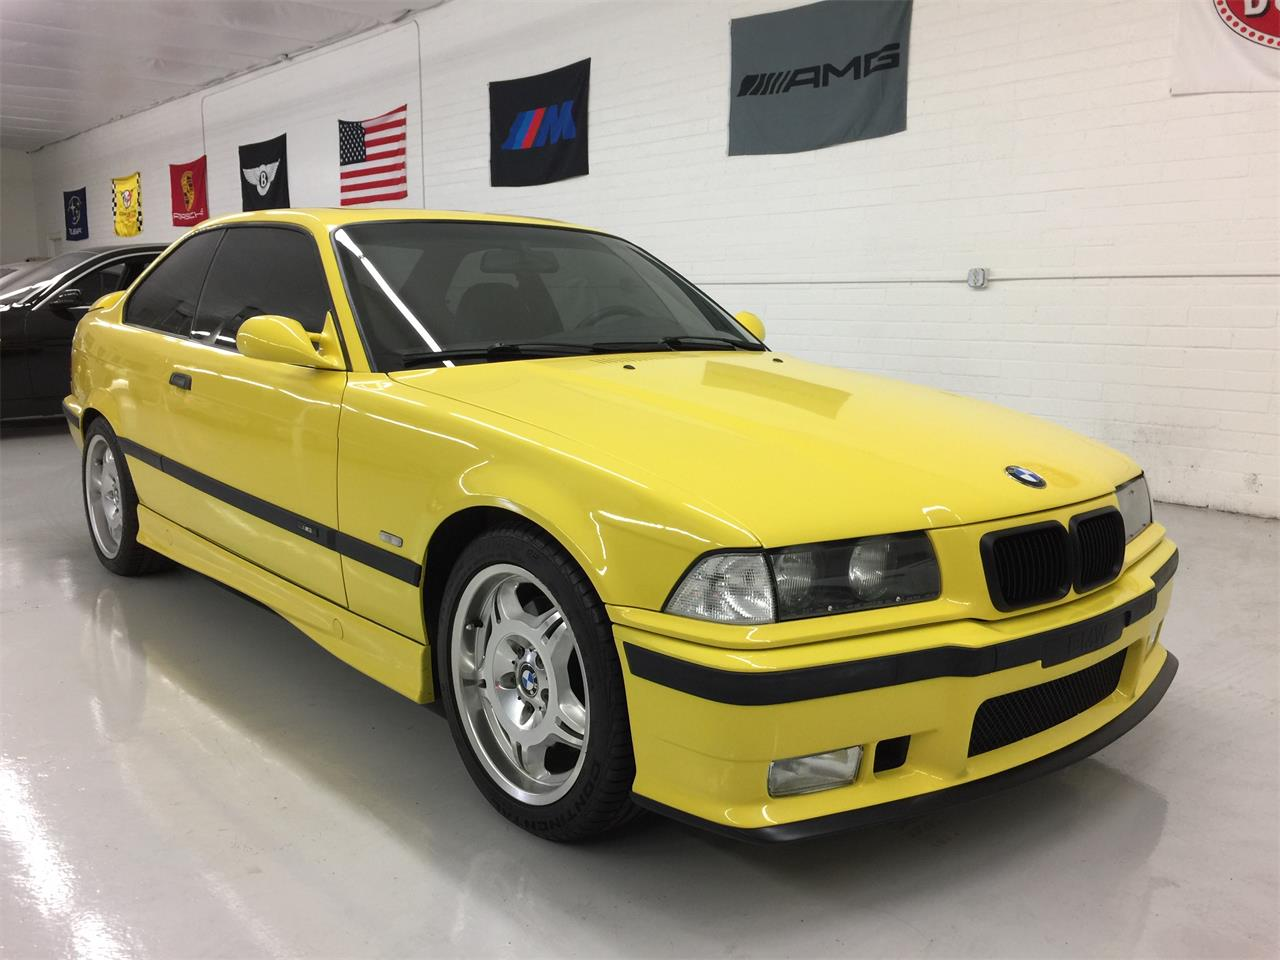 Large Picture of '97 BMW M3 located in Arizona Auction Vehicle - MO91